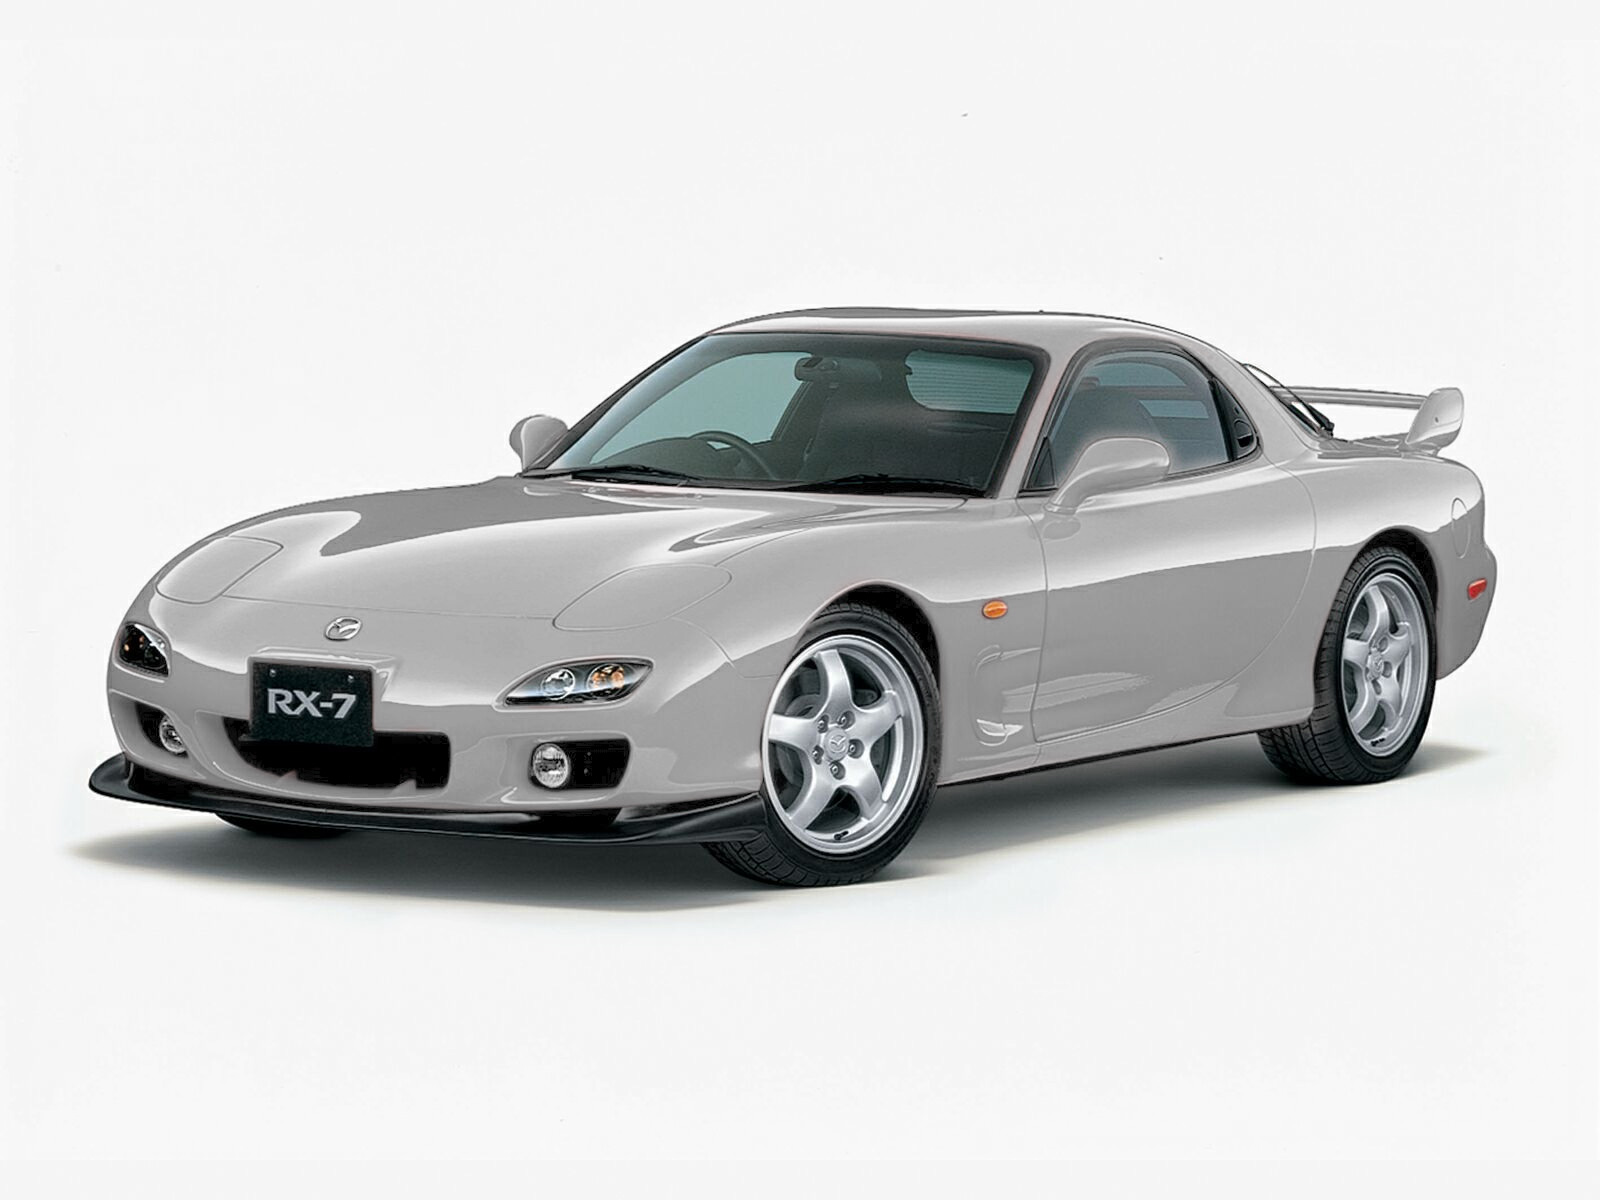 2000 Mazda RX-7 Version 6 Type RB S-Package